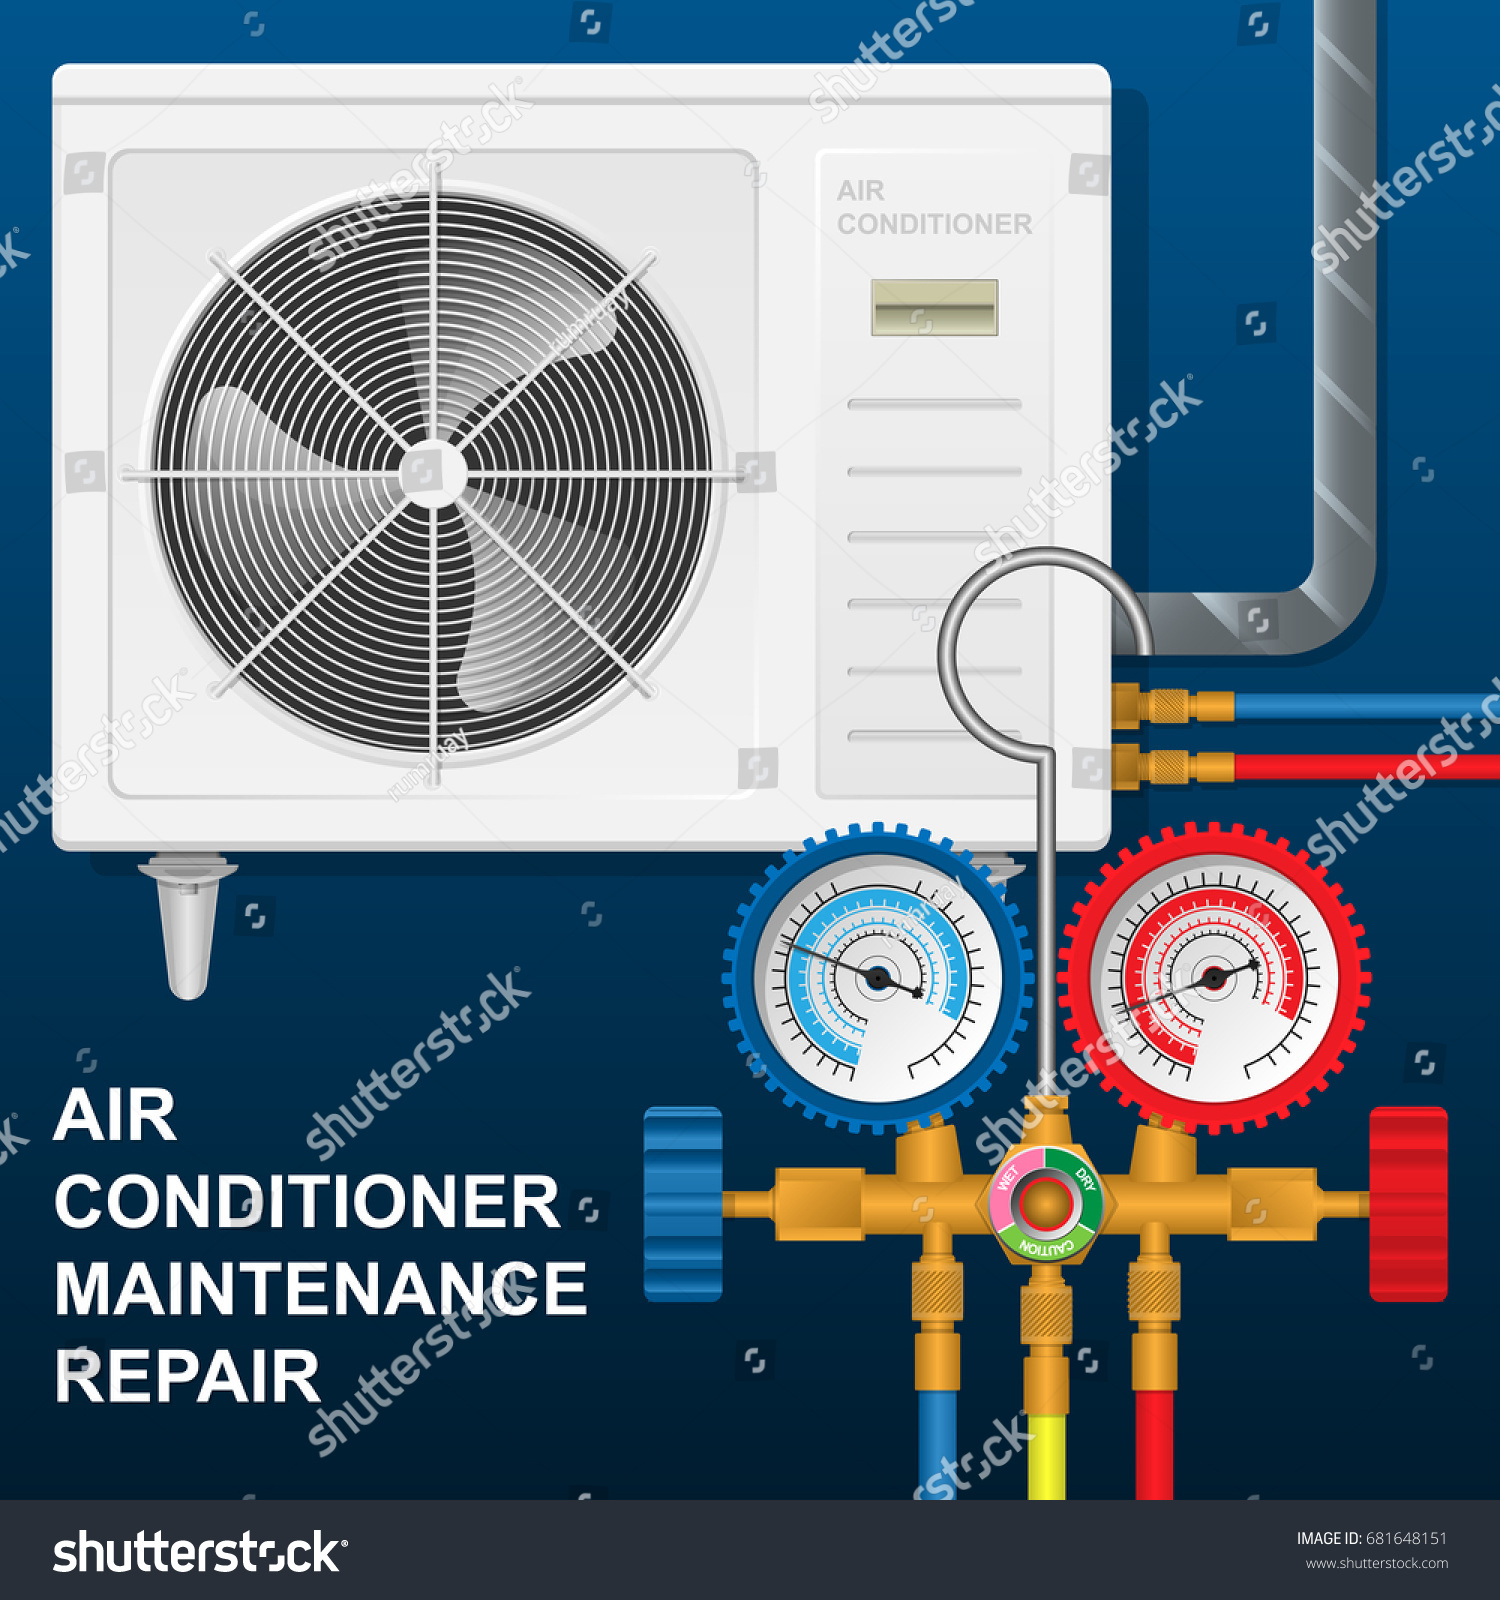 hight resolution of maintenance repair air conditioner compressor unit with manifold gauge